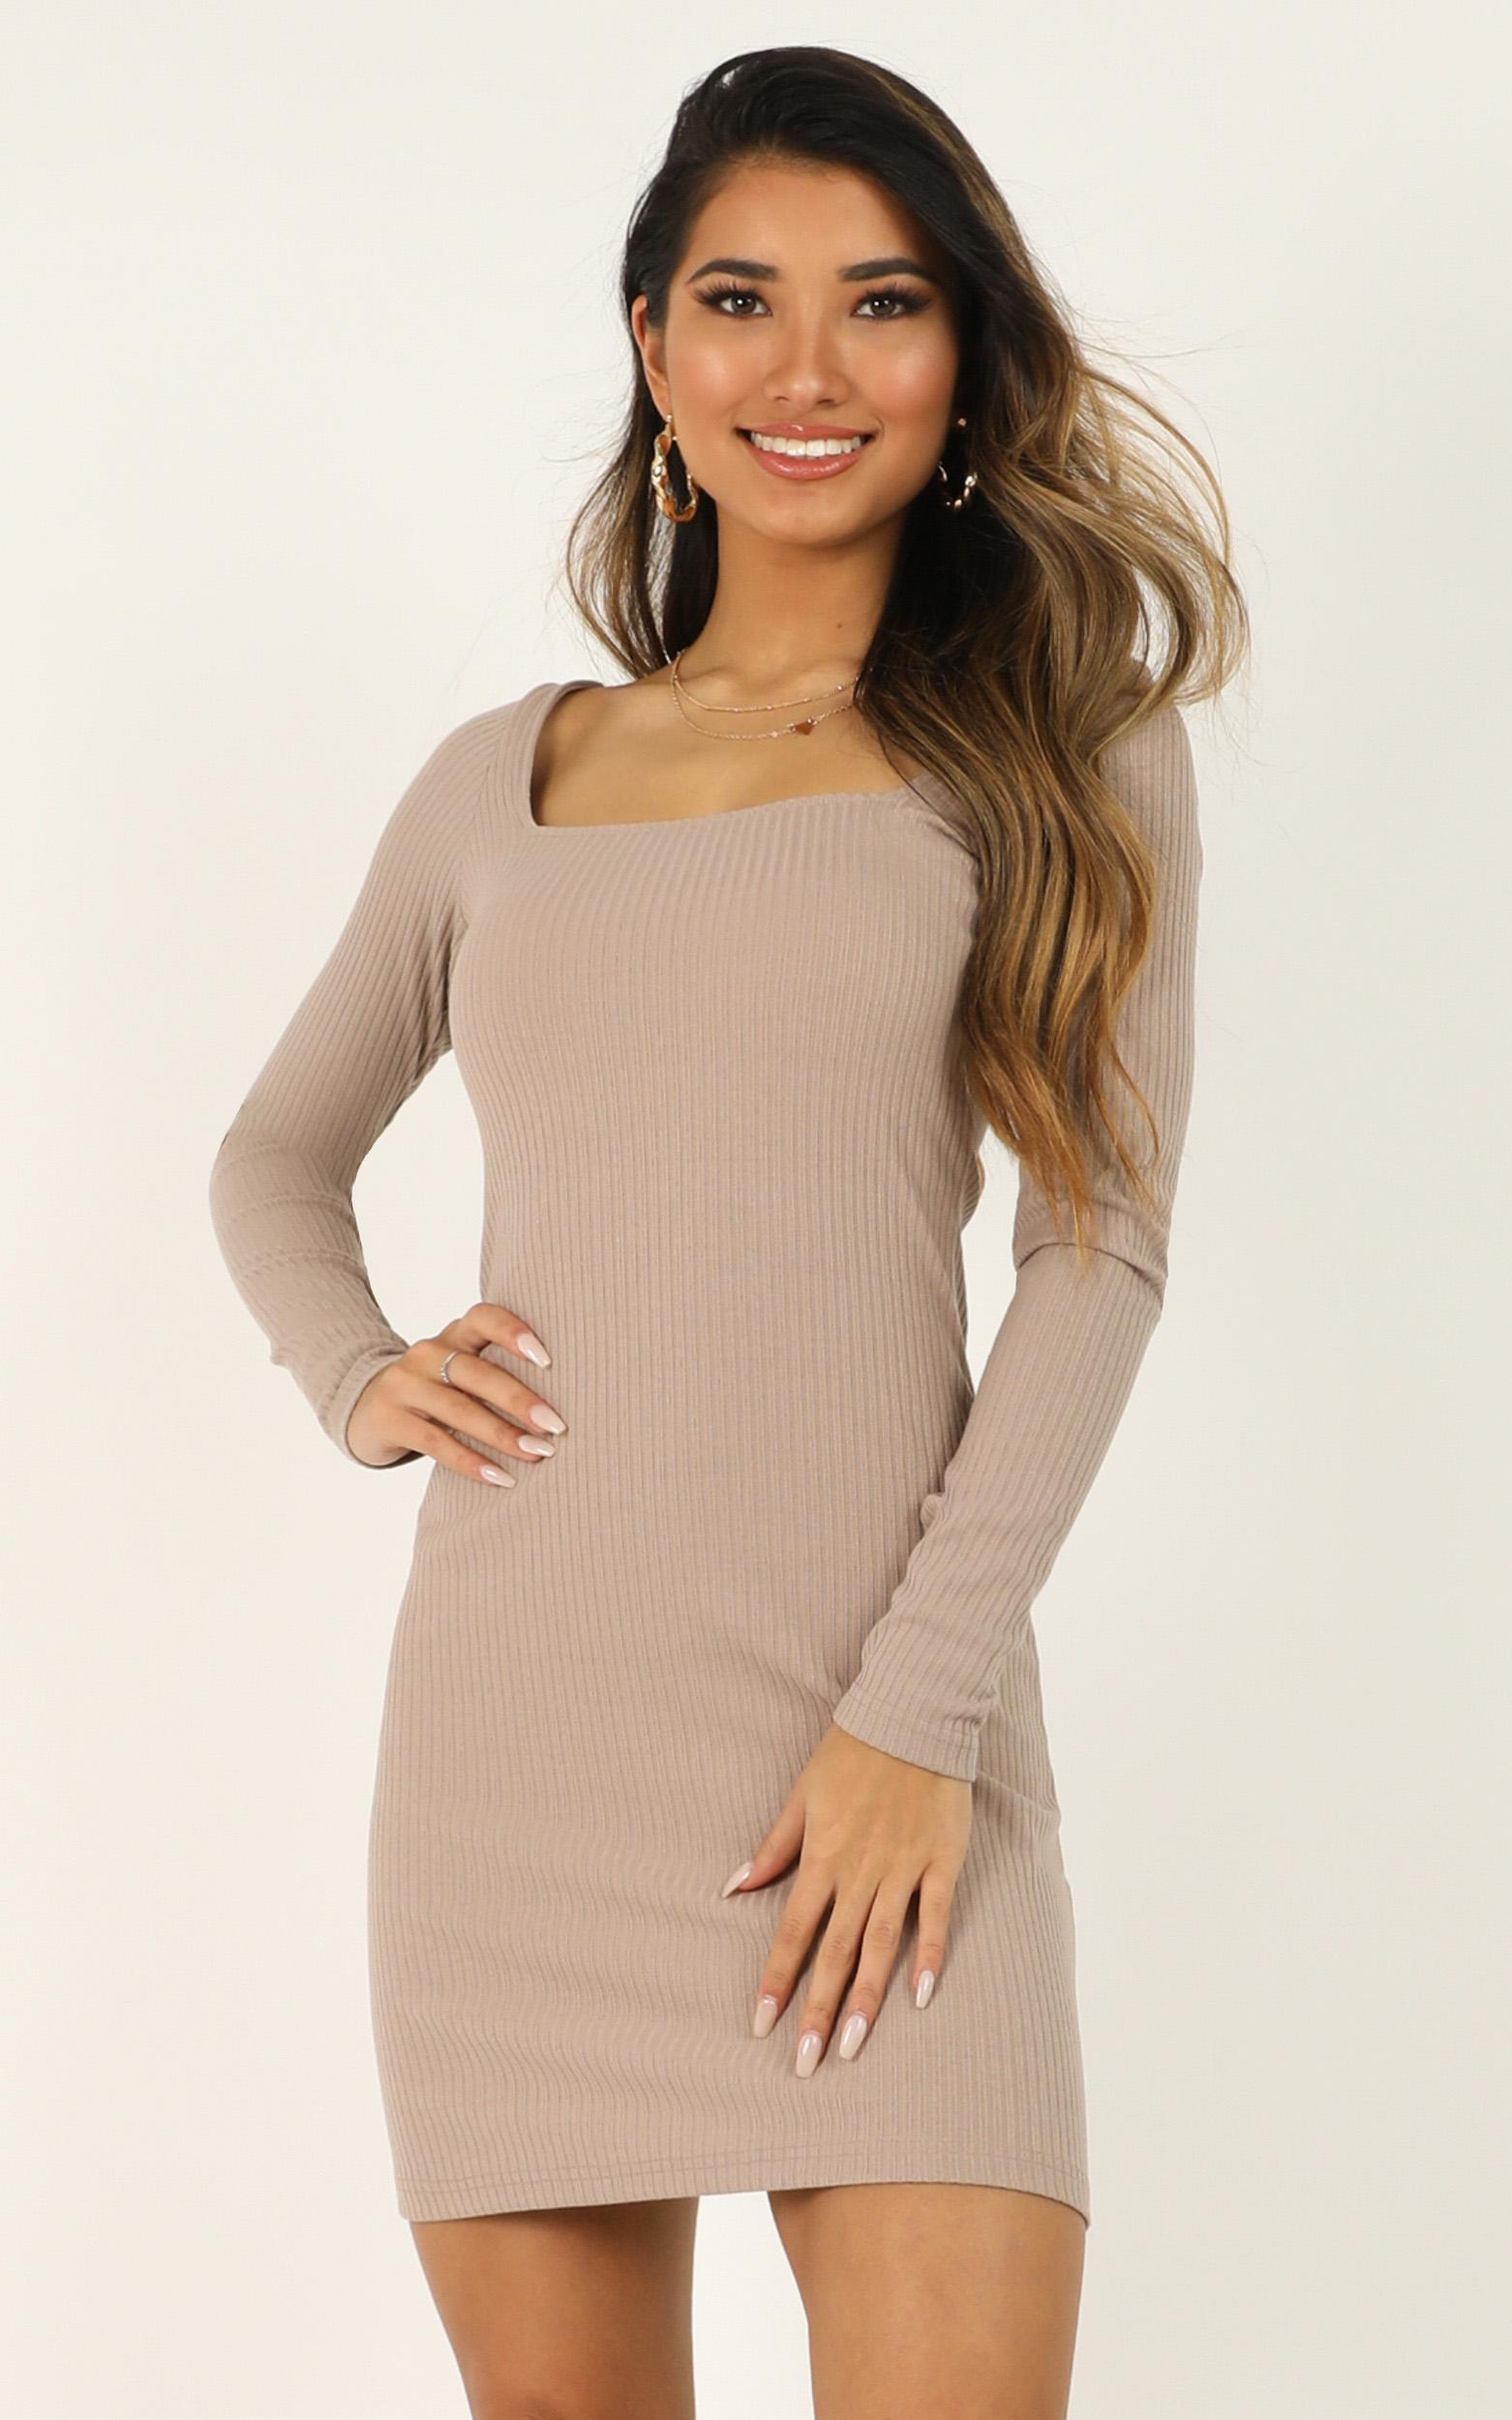 Ticking By Dress in mocha - 20 (XXXXL), Mocha, hi-res image number null